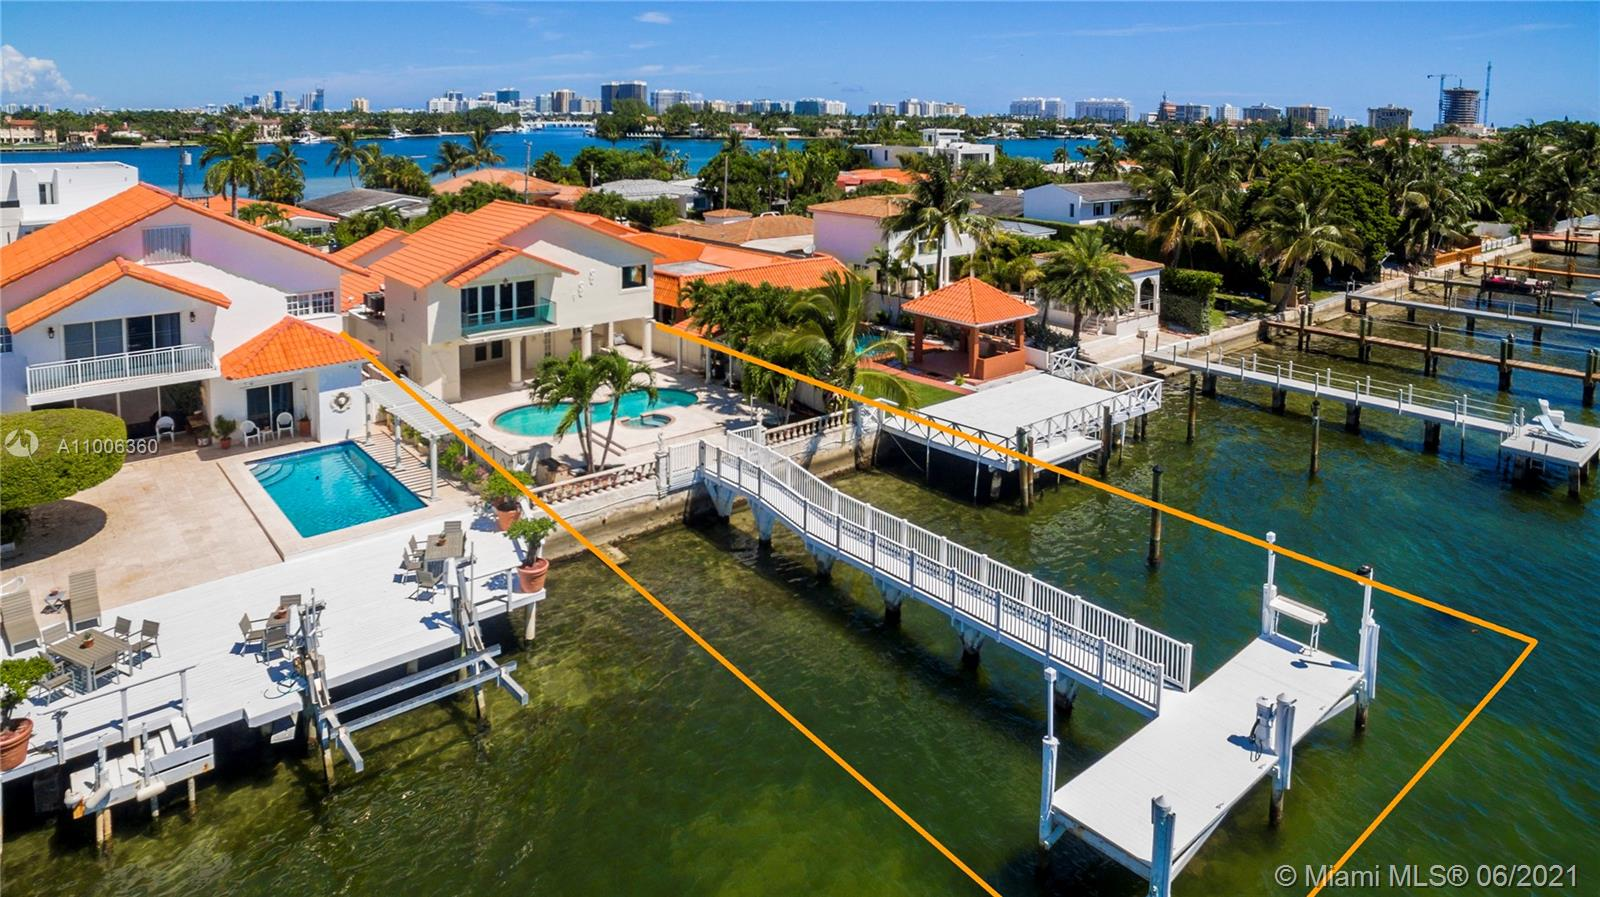 Investment opportunity, rented until April 30, 2022. Tenants do not allow showings. Remodeled home on guard gated island with unobstructed impressive SE views of the wide bay. No bridges to bay and perfect for the serious boater. Enjoy over 3100 adjusted sq.ft. 4 bedrooms 4 full baths + open remodeled gas kitchen facing living areas. Three good sized bedrooms down stairs, spacious master bedroom up. Water side pool & covered patio area + brand new T-dock.